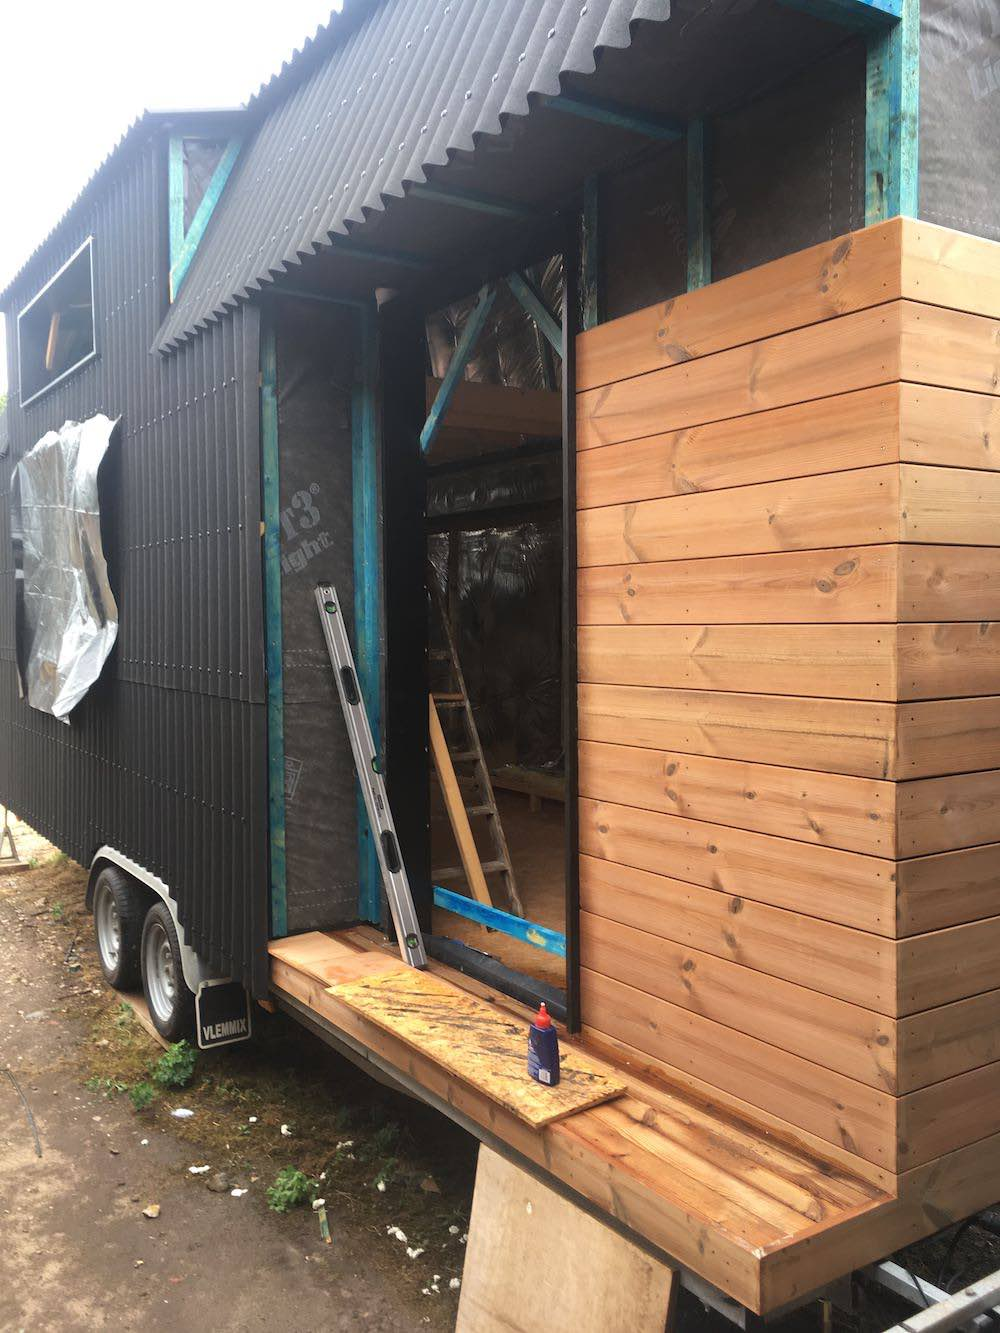 View through the front door of the tiny house